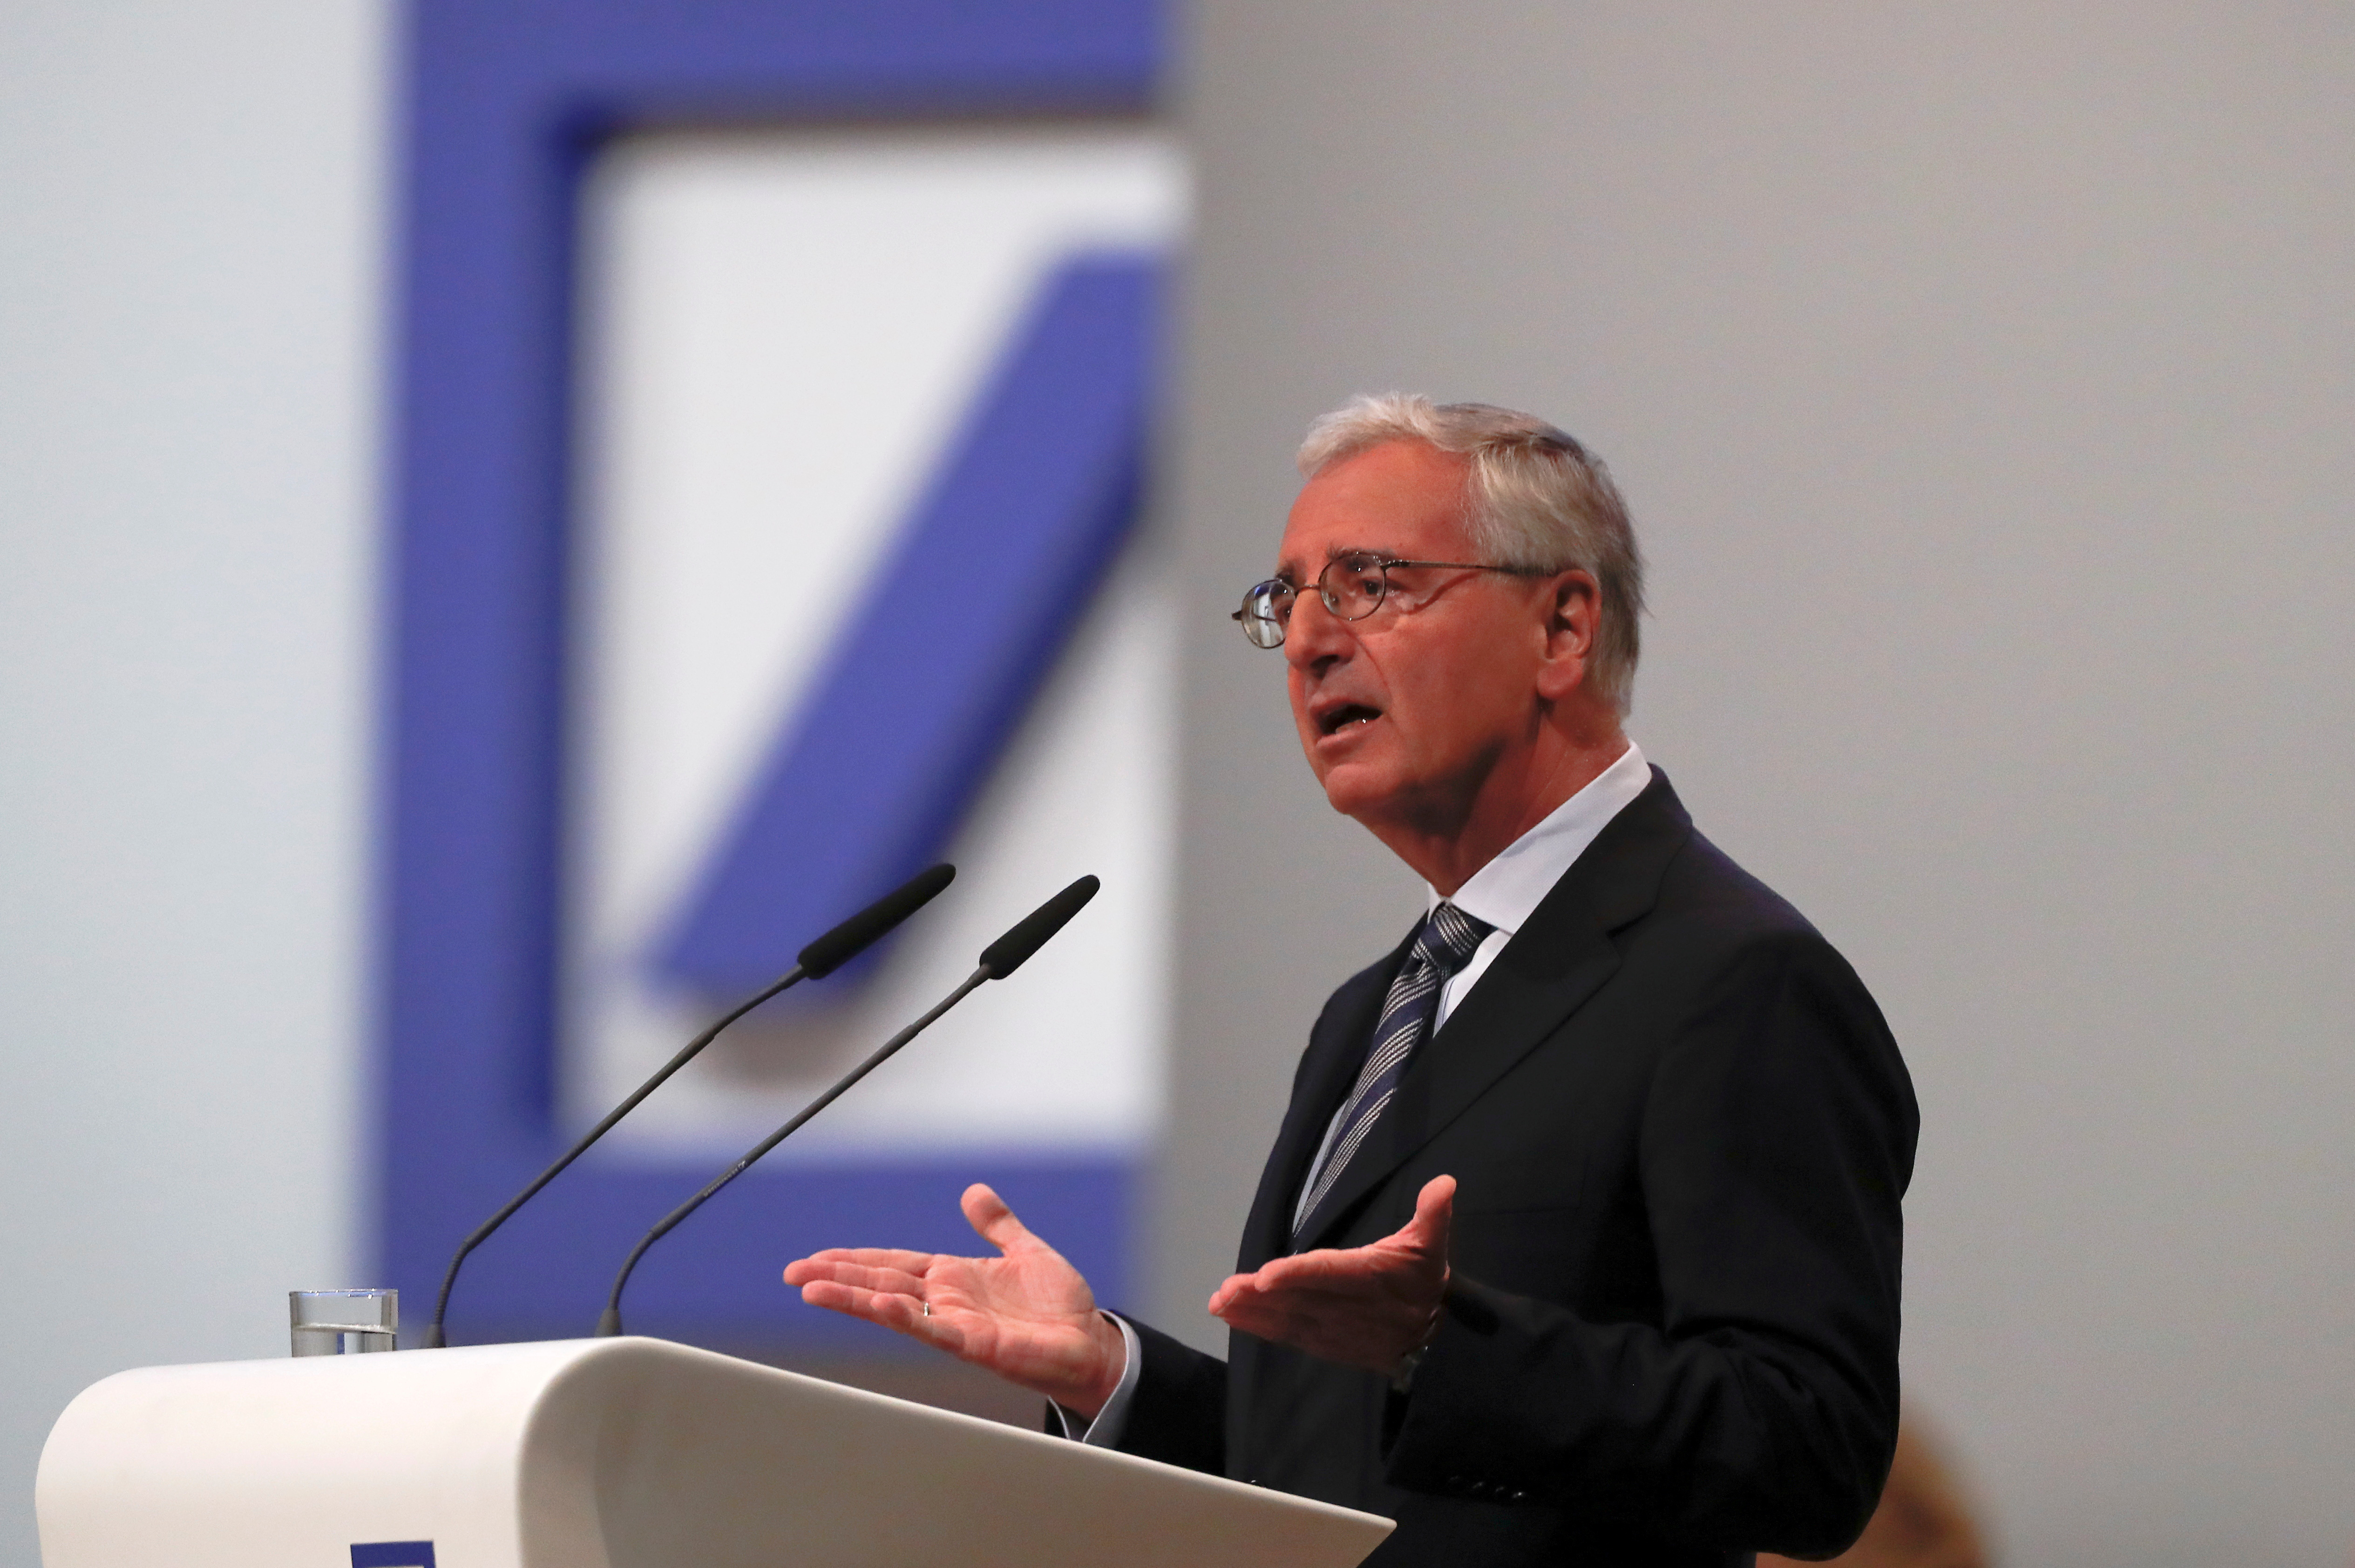 Chairman of the board Paul Achleitner delivers his speech during the annual shareholder meeting of Germany's largest business bank, Deutsche Bank, in Frankfurt, Germany, May 23, 2019. REUTERS/Kai Pfaffenbach/File Photo